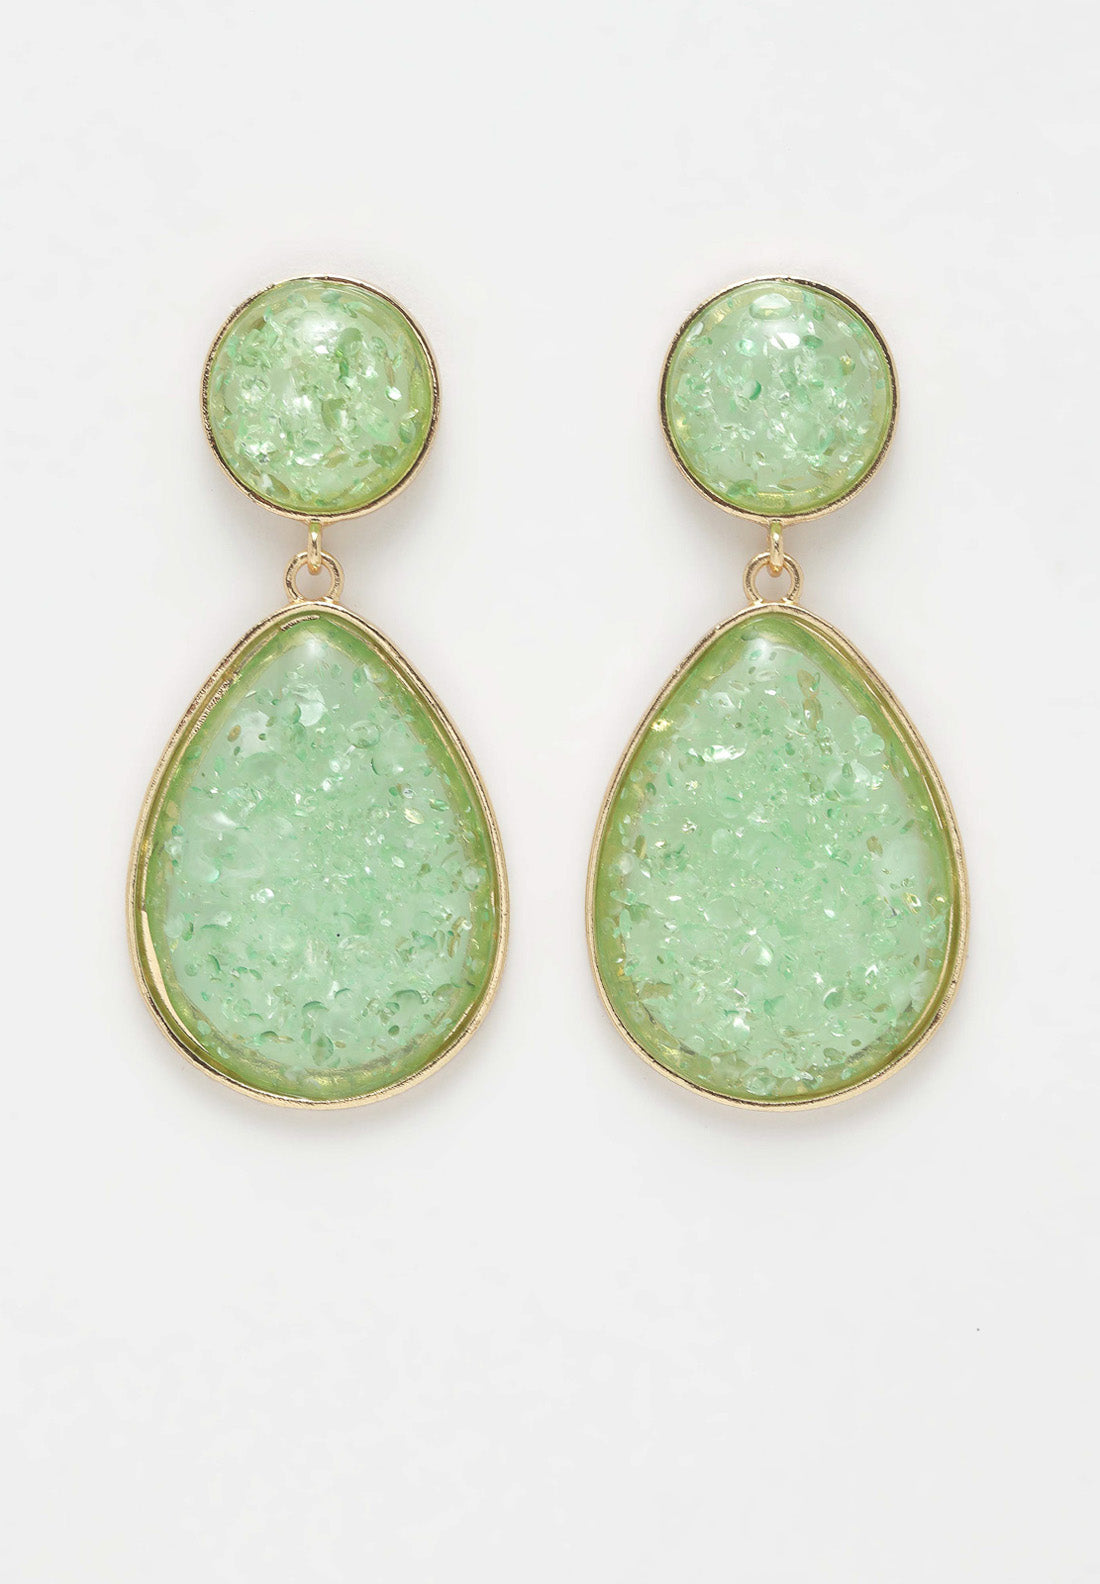 Avant-Garde Paris Green Stone Earrings